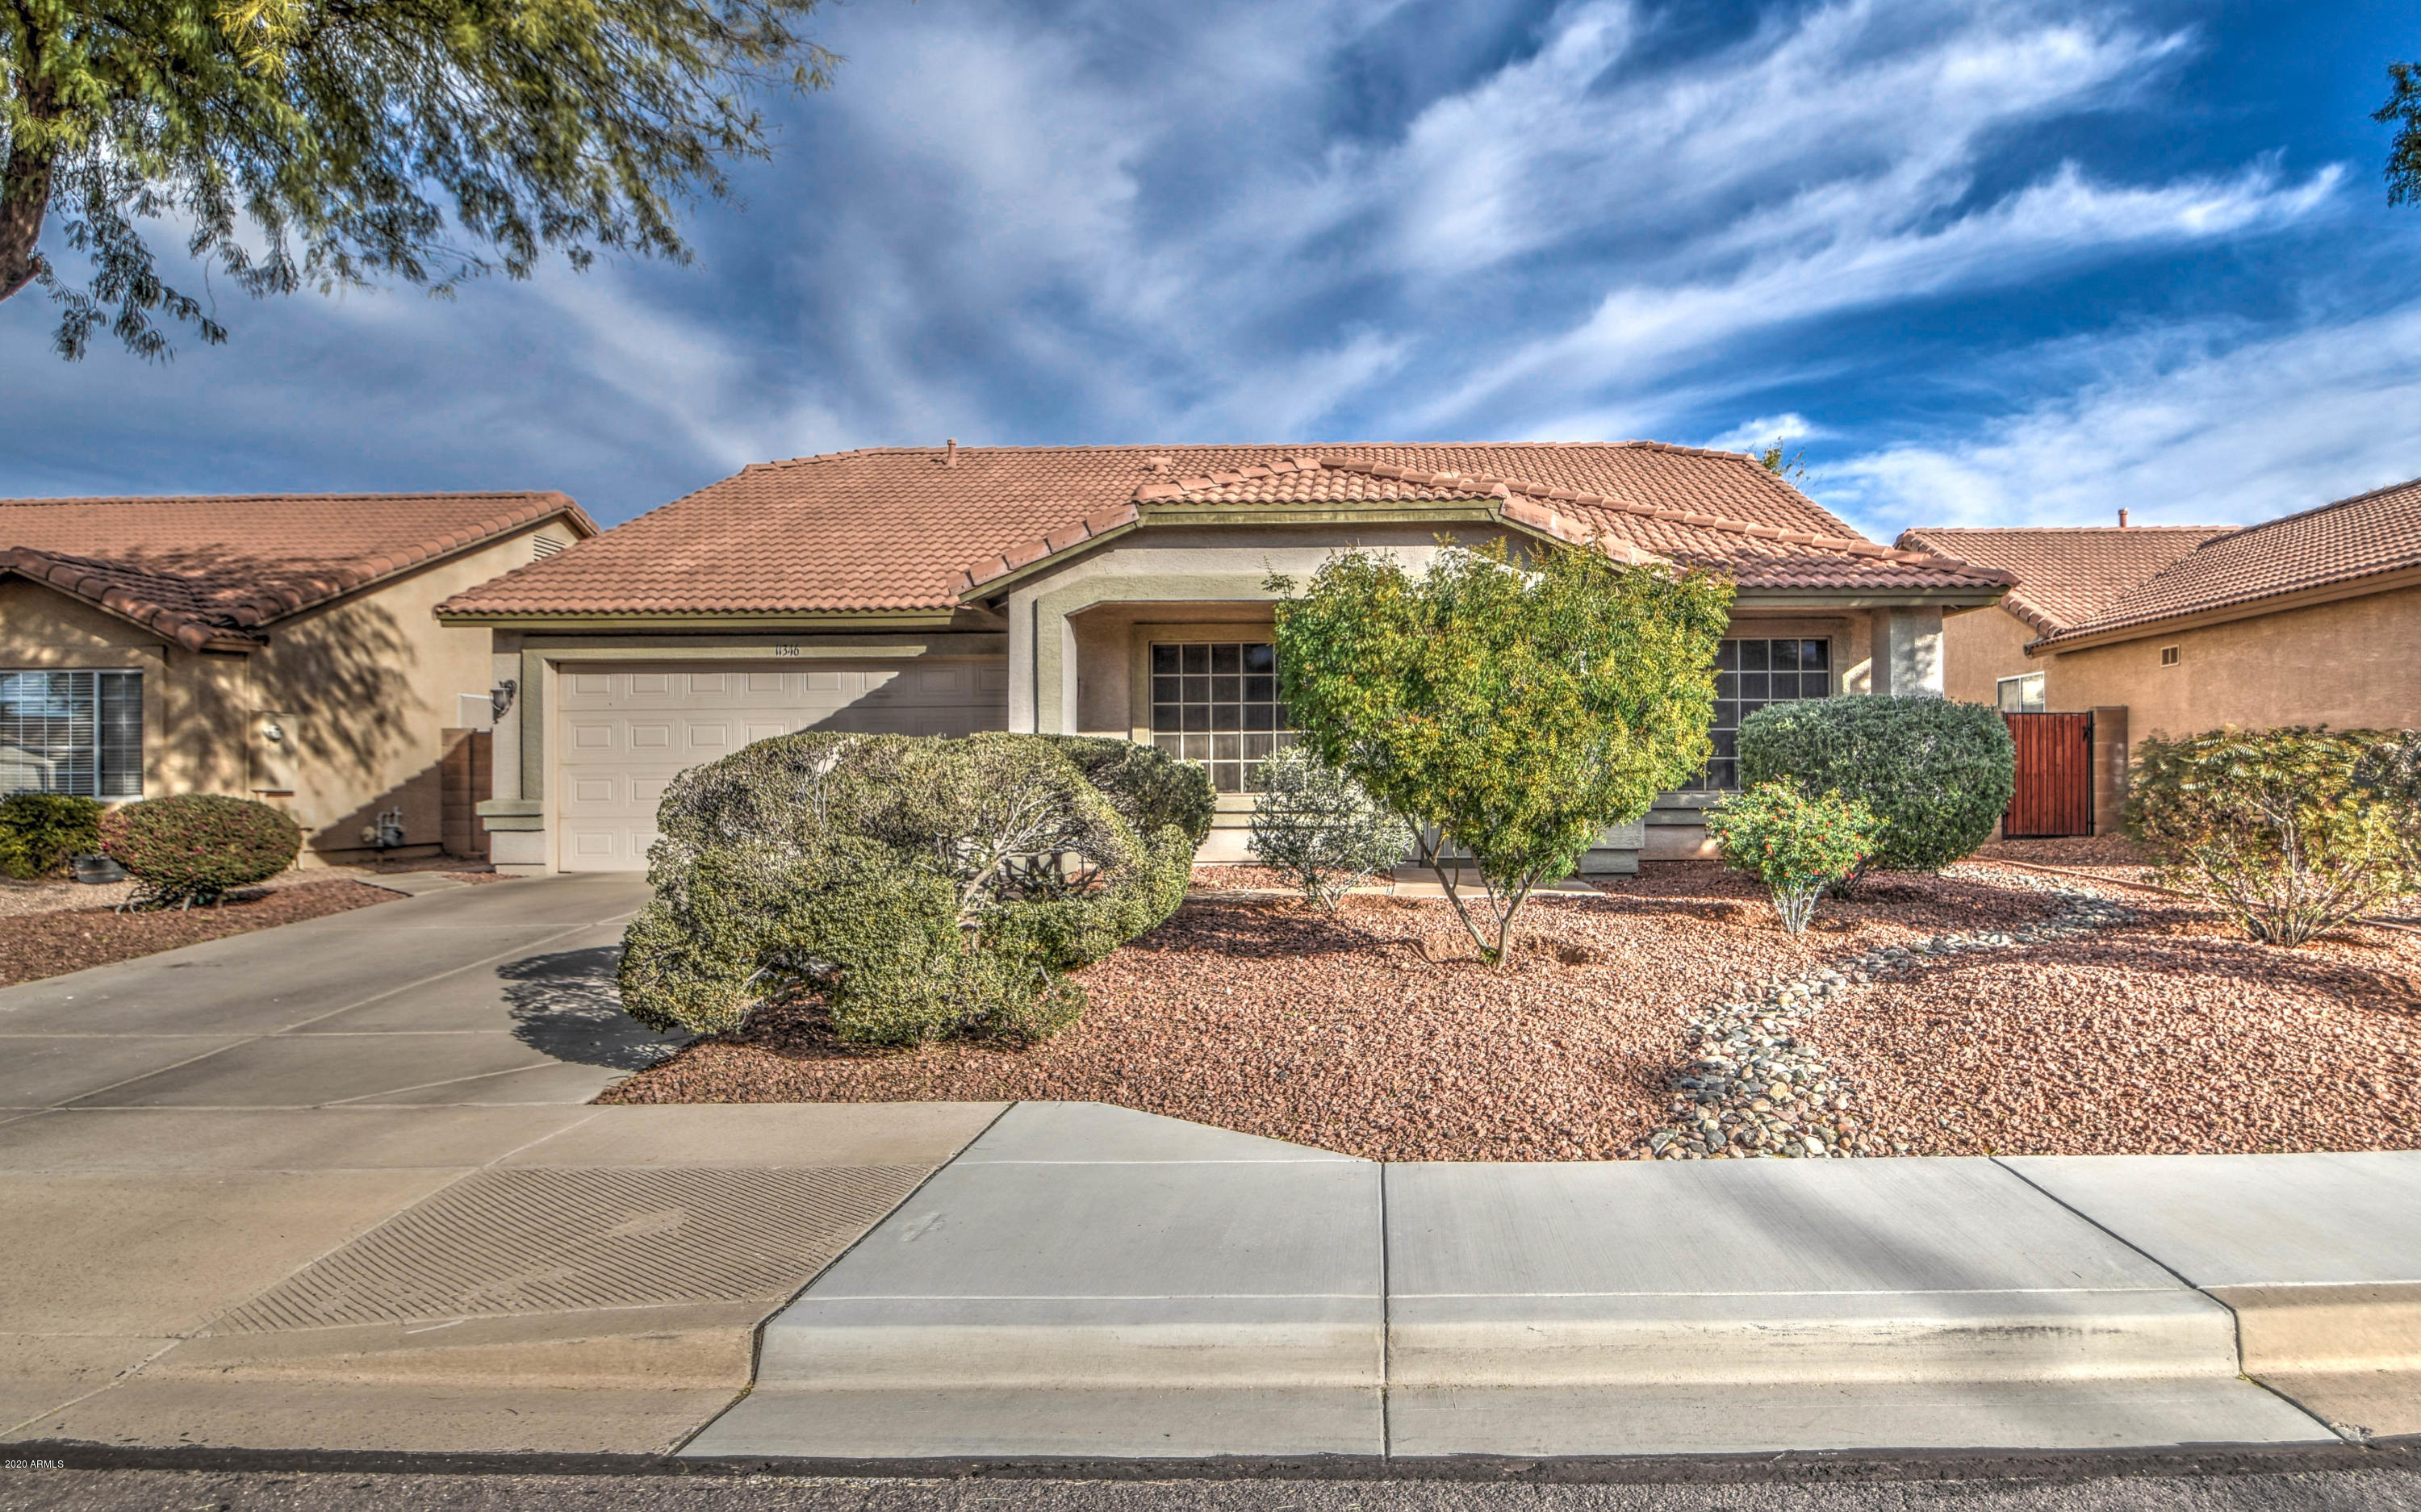 Photo of 11346 E DOWNING Circle, Mesa, AZ 85207